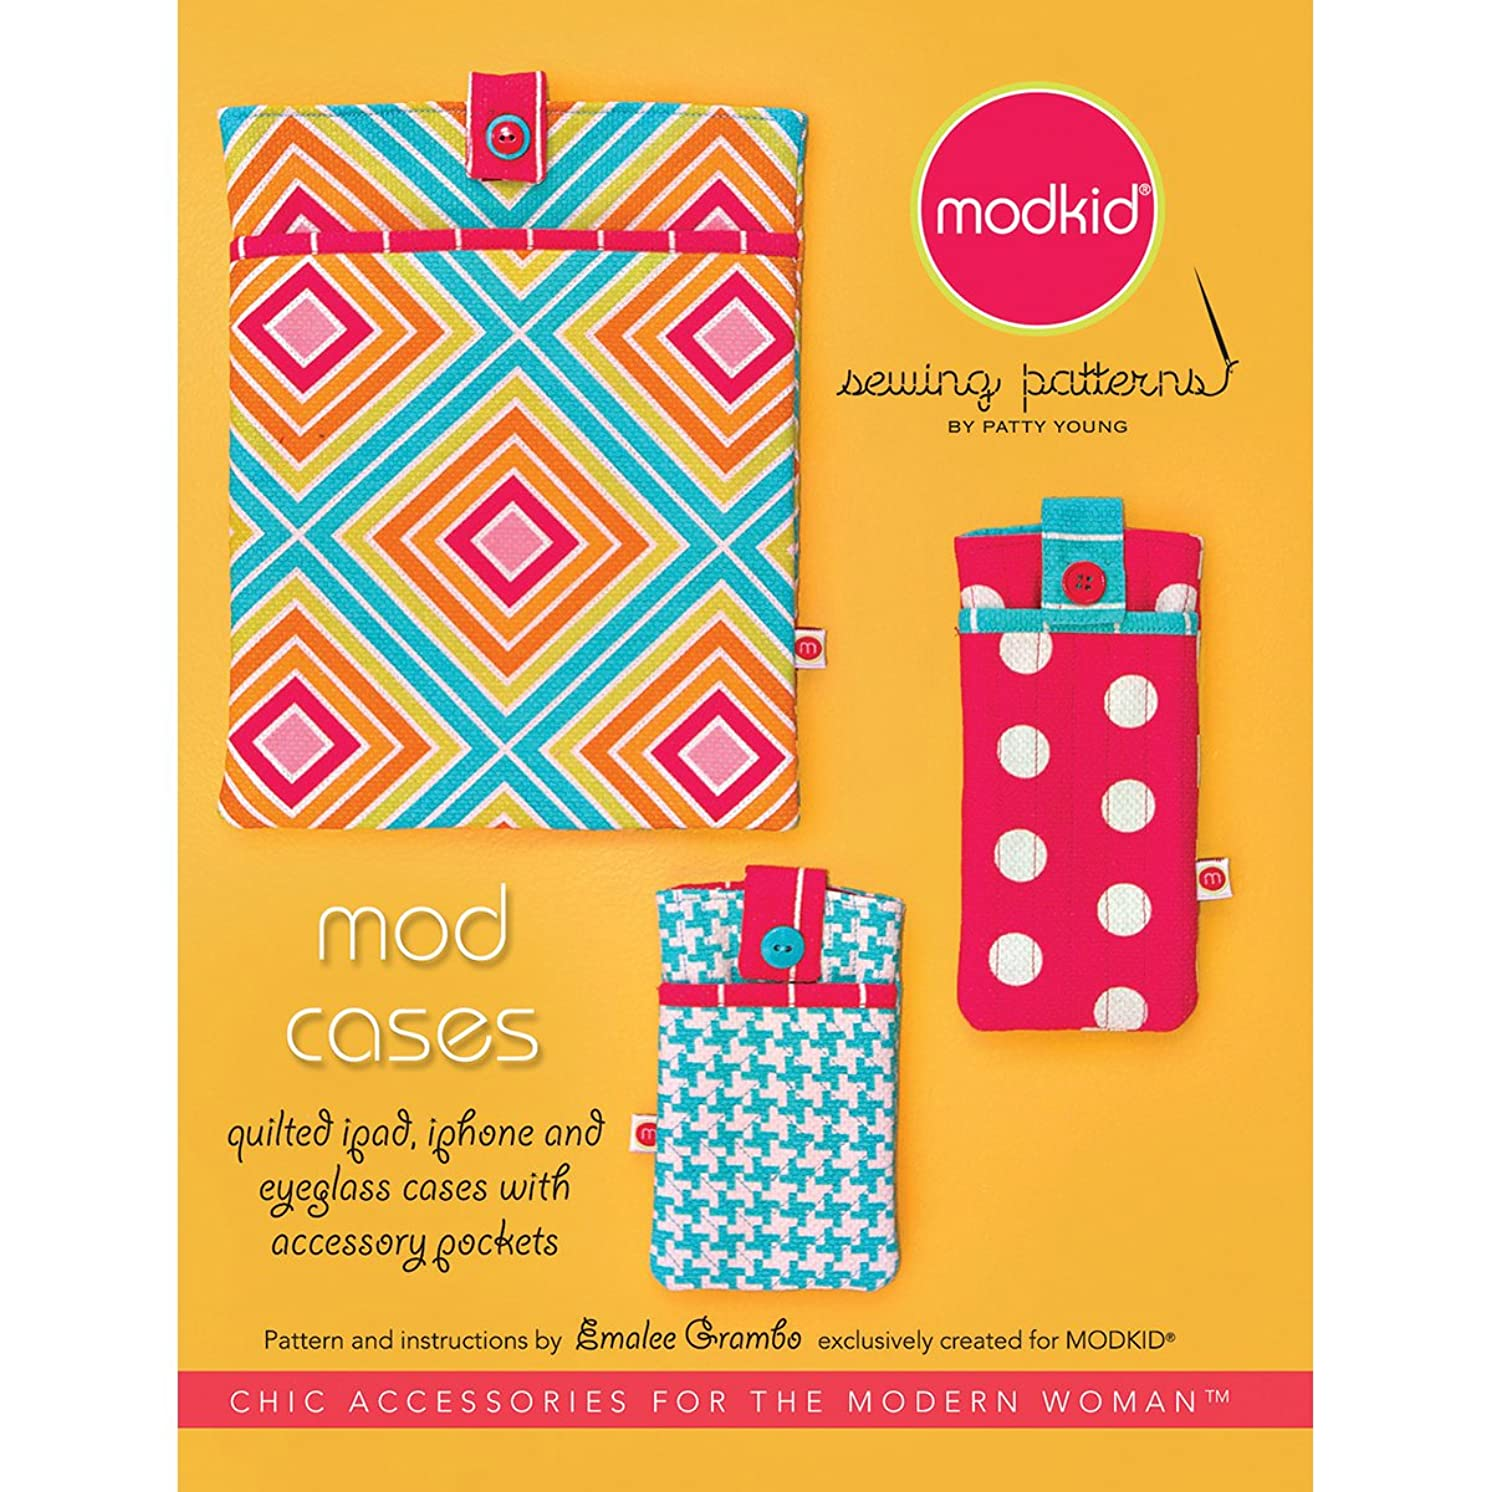 ModKid Sewing Patterns, Mod Cases